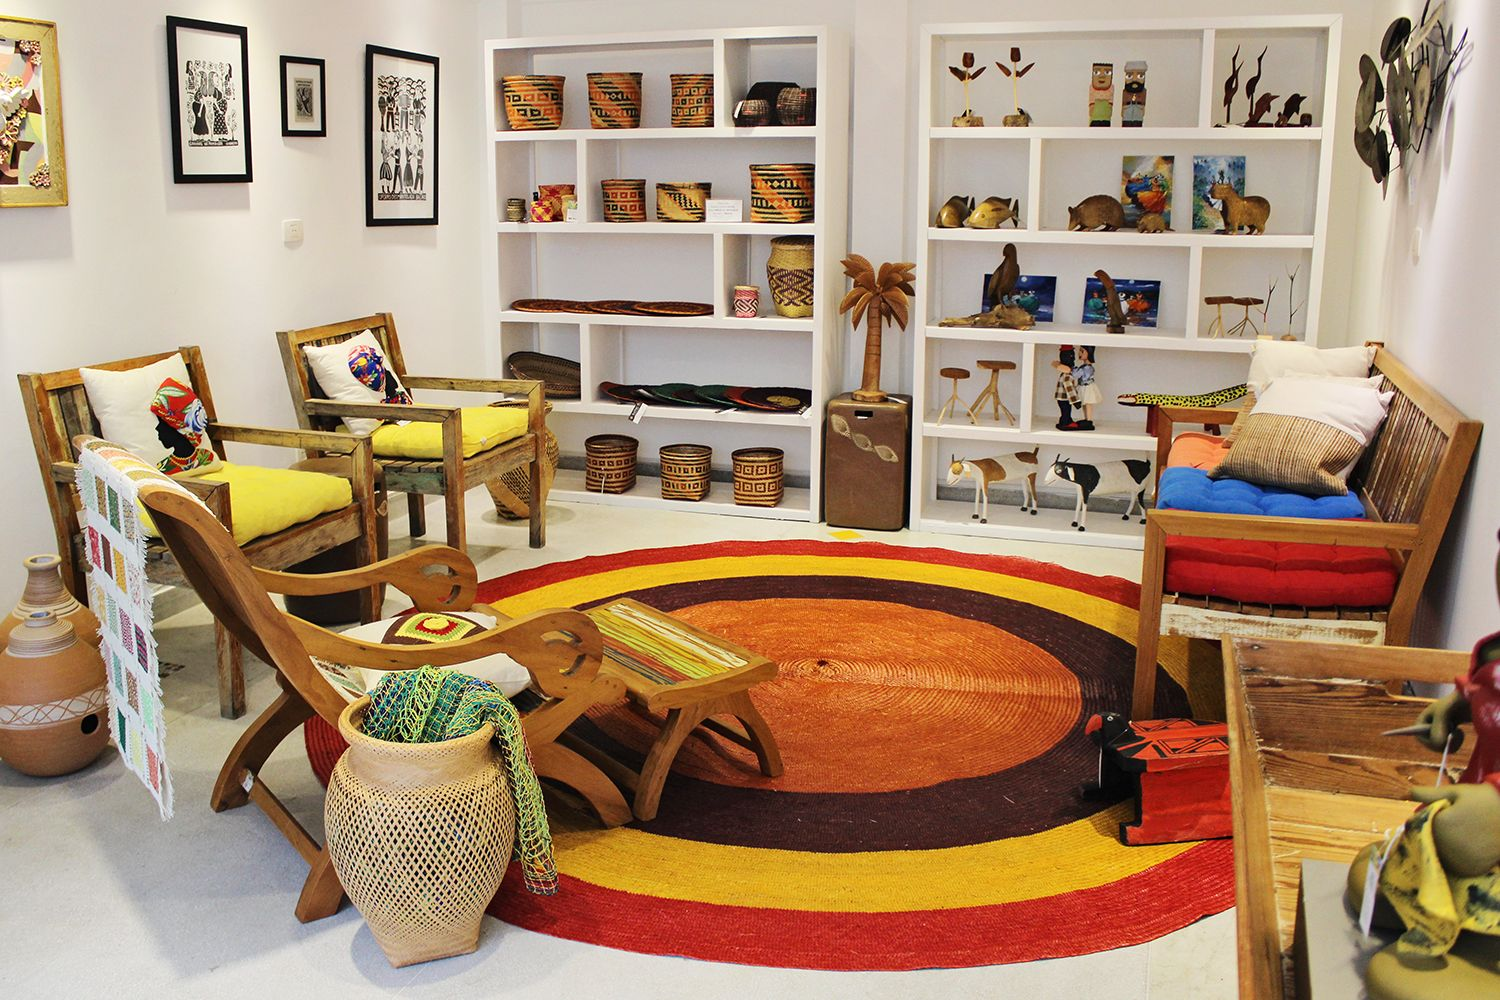 Um ambiente inteirinho montado com peças de arte e artesanato brasileiro. Venha nos visitar! � Veja onde adquirir nossas peças em http://www.fuchic.com.br/#!enderecosfuchic/cq3z // A whole room fitted with pieces of Brazilian arts and crafts. Come visit us! � See where to get our products: http://www.fuchic.com.br/#!enderecosfuchic/cq3z